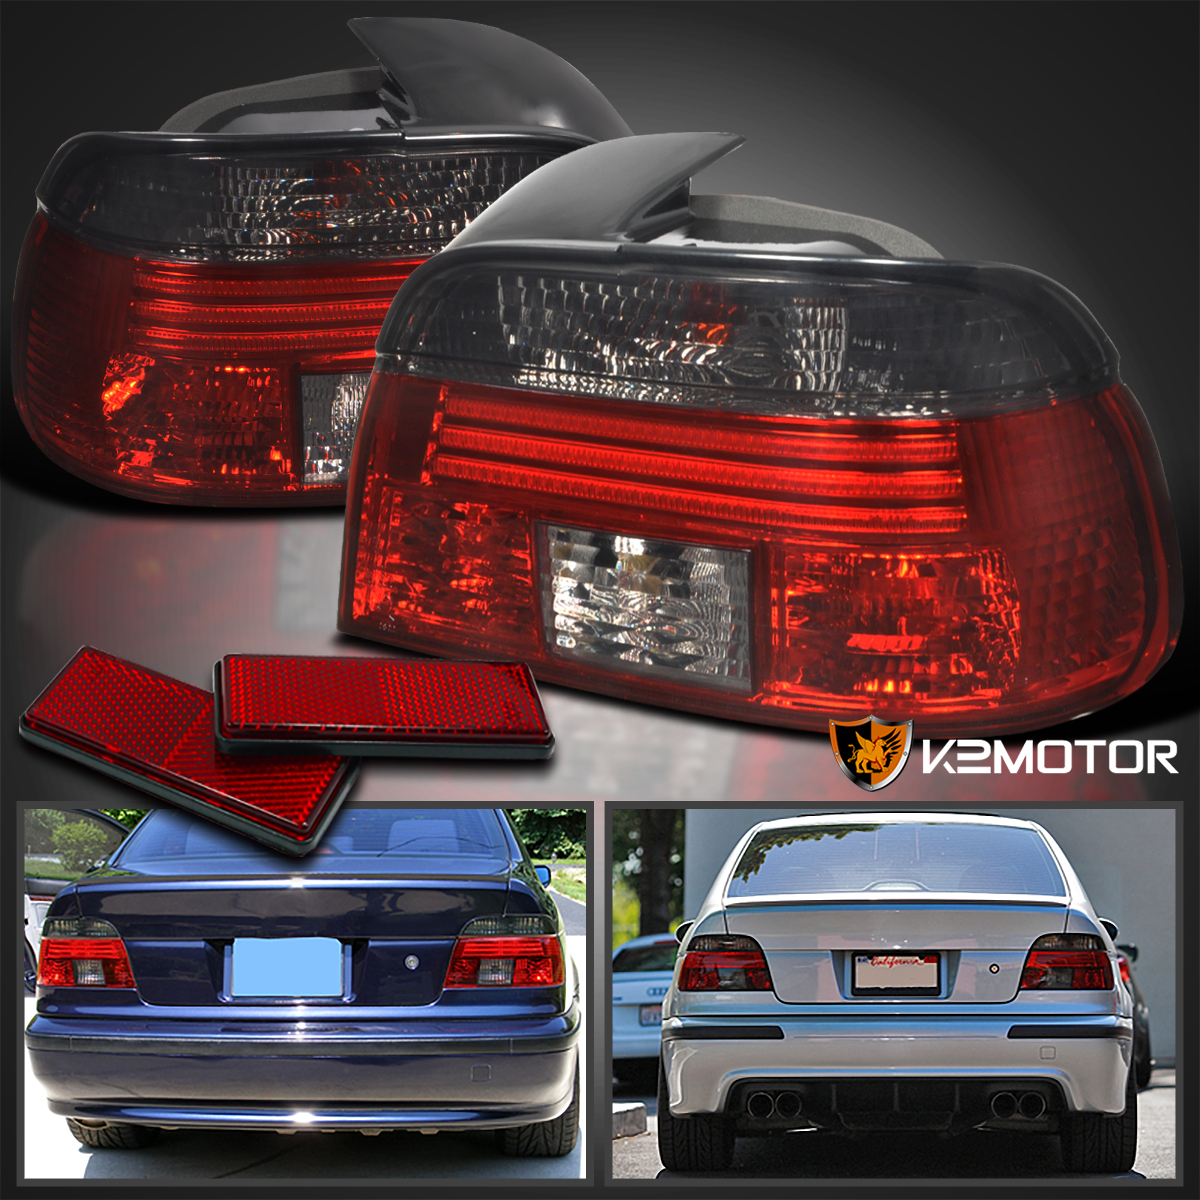 Details About 1997 2000 BMW E39 525I 528I 530I 540I 5 Series Smoke Tail Lights Left Right